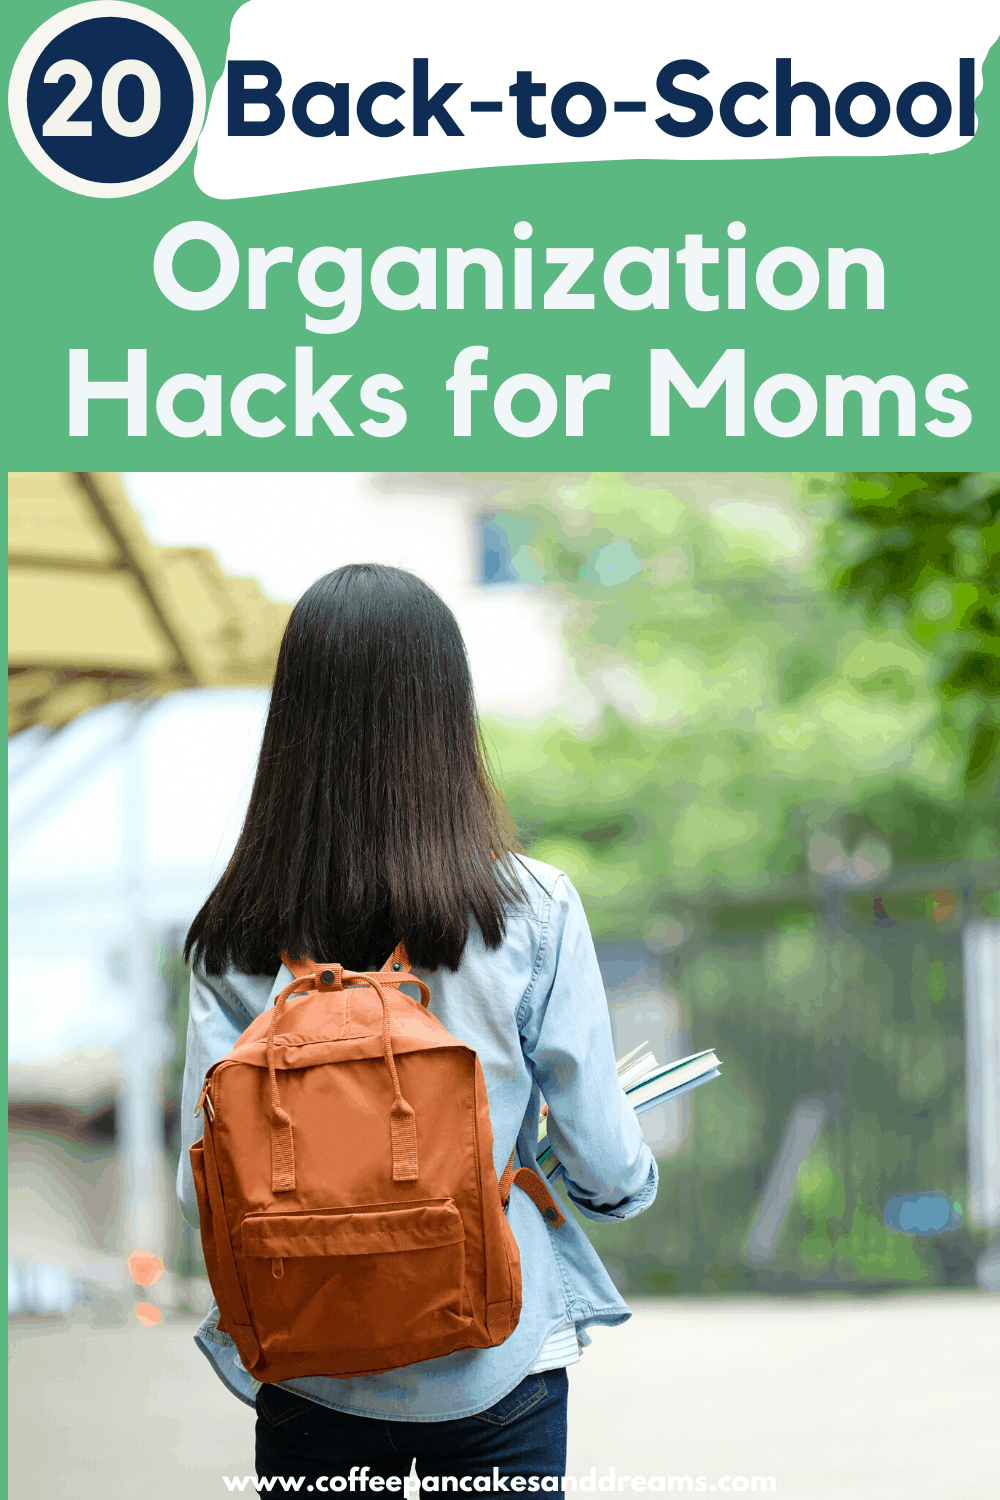 Back to School Organization Tips for Moms #schooltips #1stdayofschool #schoolorganization #checklist